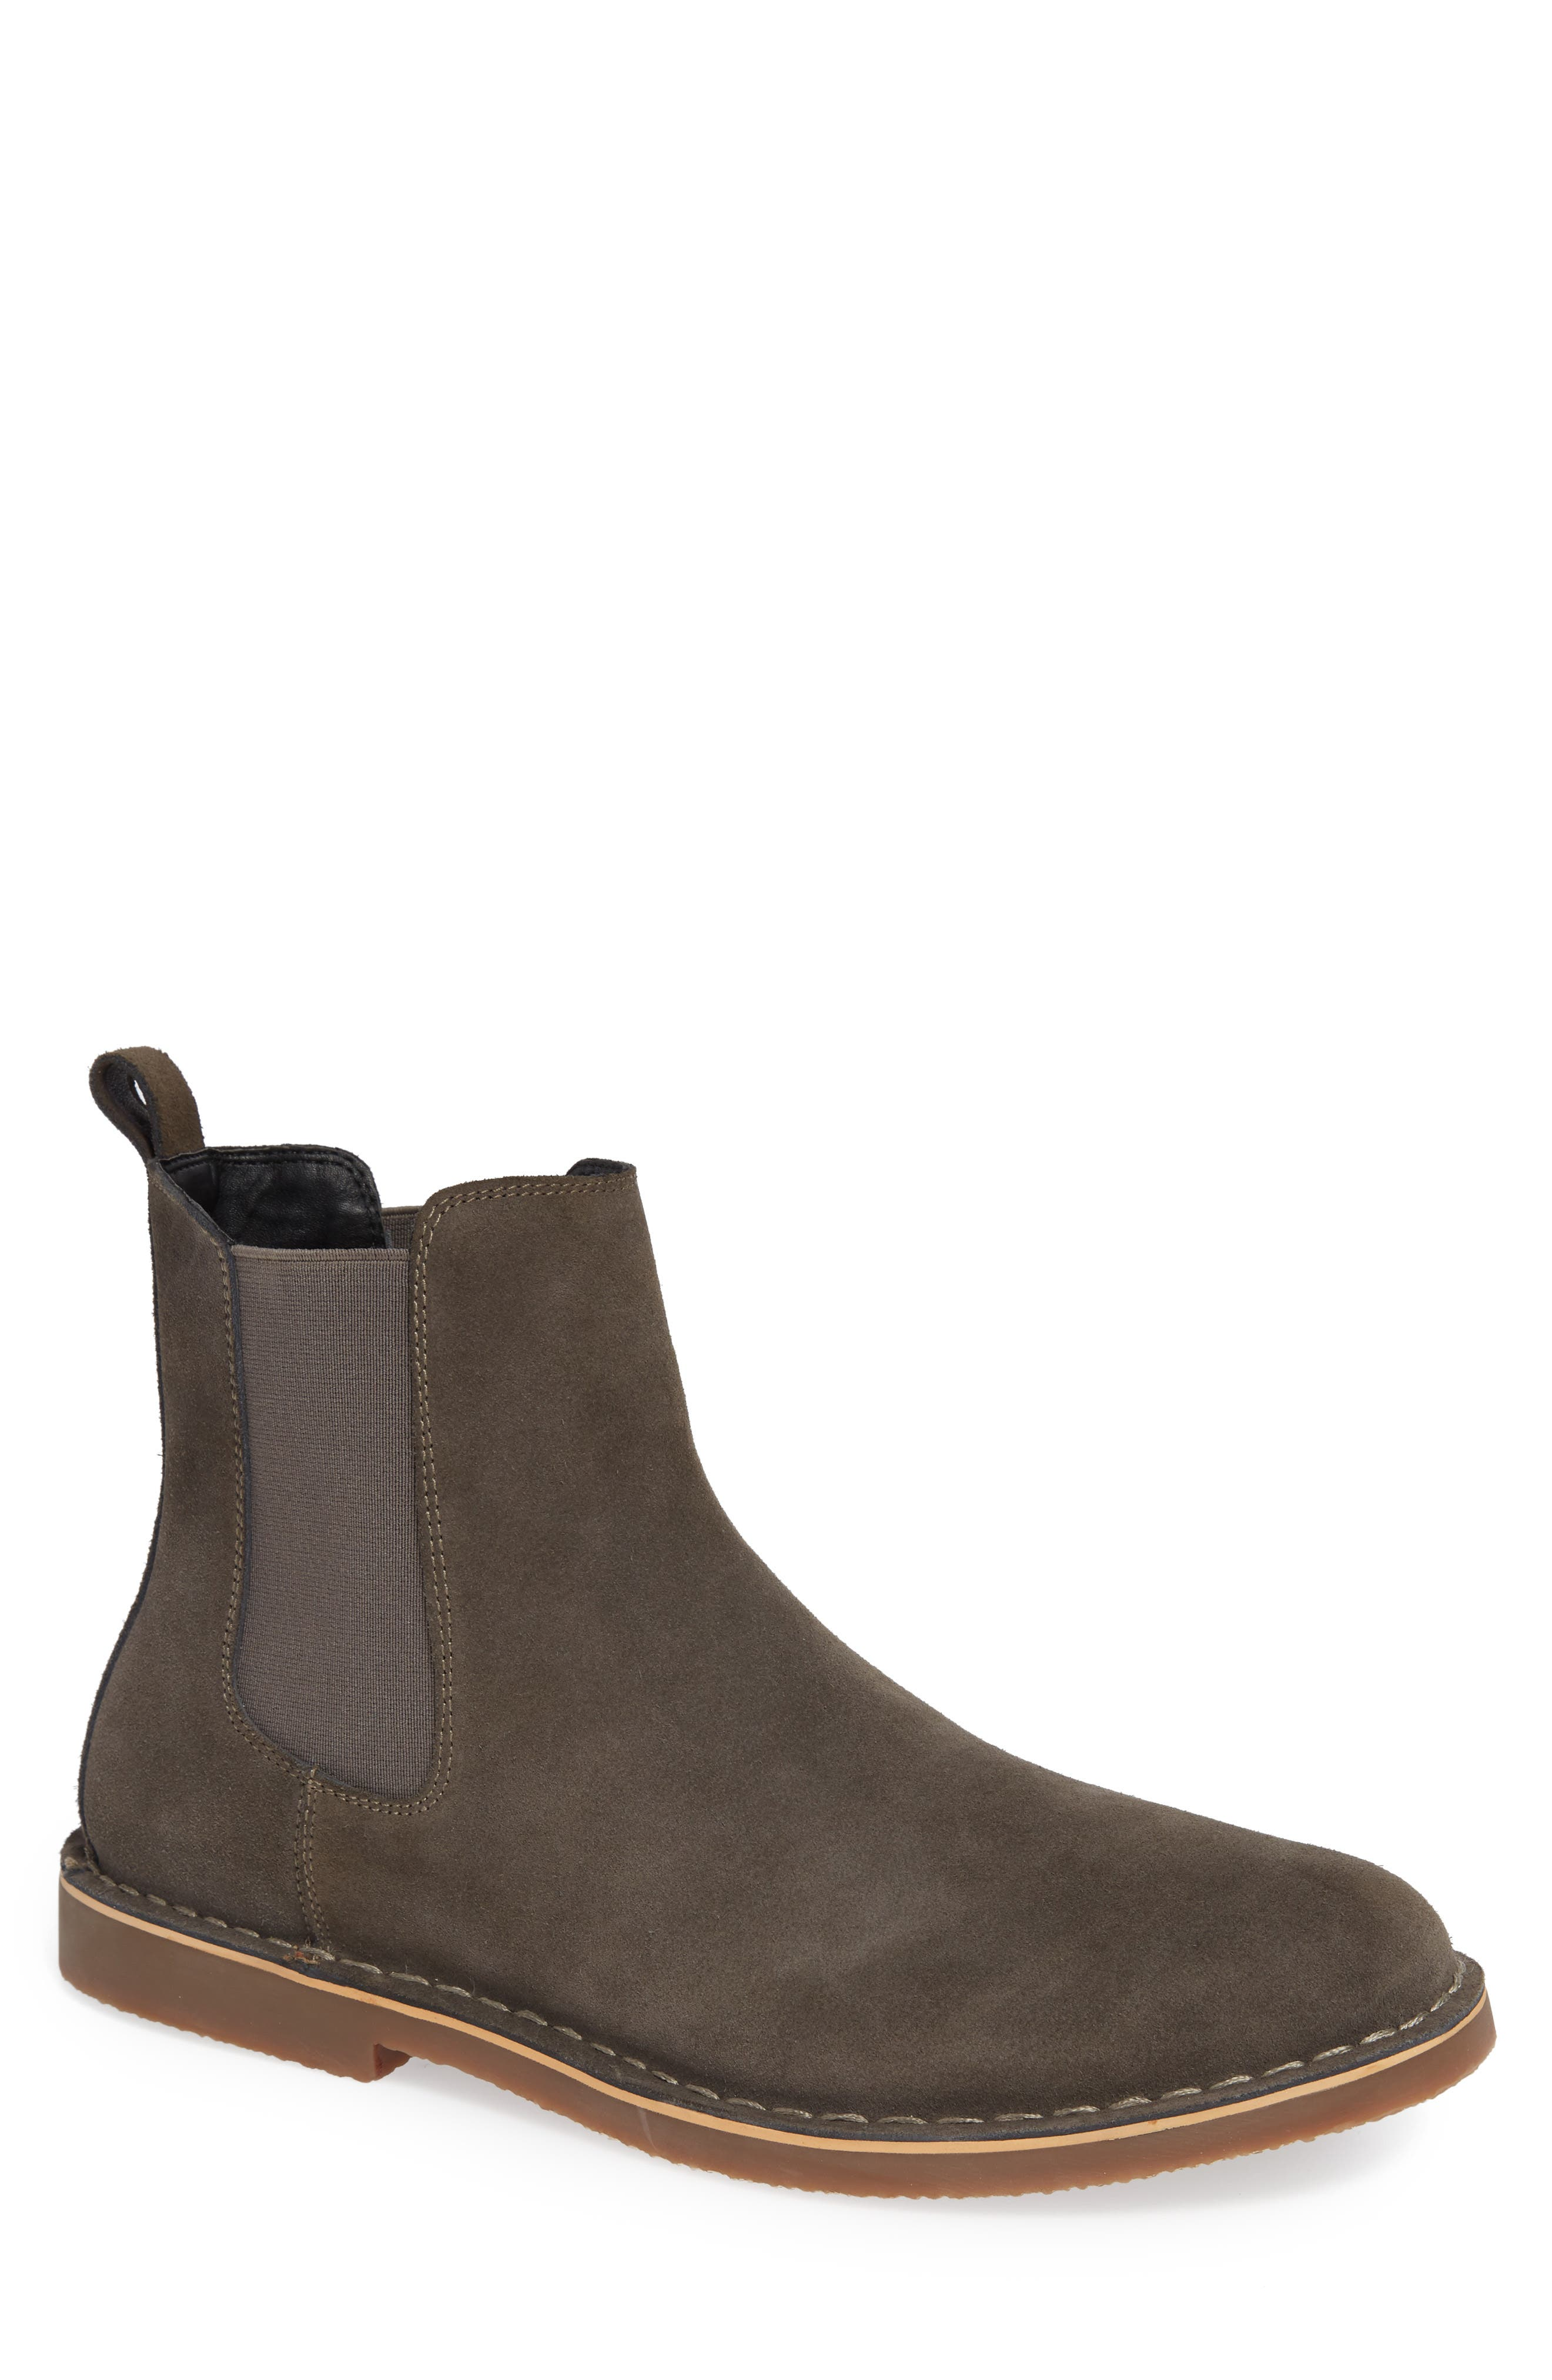 Mesa Chelsea Boot,                         Main,                         color, Charcoal Suede